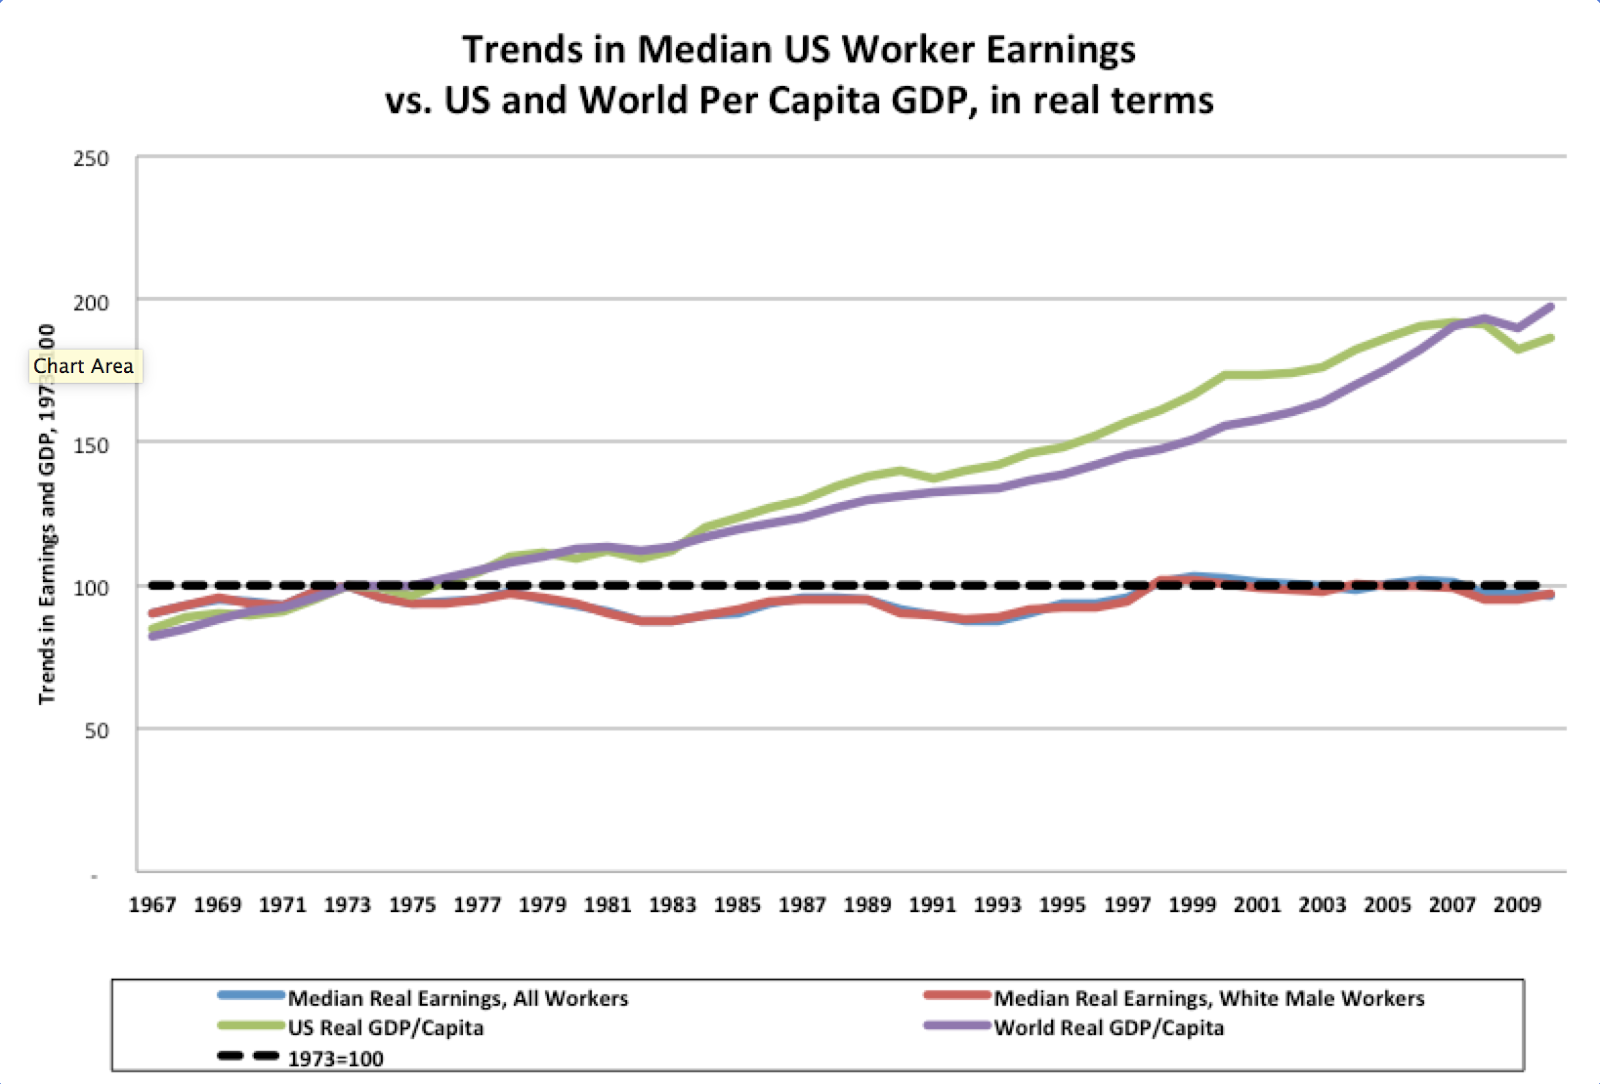 the microeconomic picture of the us wage trends since 1973 Trends in us productivity growth and real compensation the divergence  since 1973 between real wage growth and productiv- ity growth in  available,  the broad picture is clear table 3  bpea, microeconomics, 2:1993, 161-210  us.